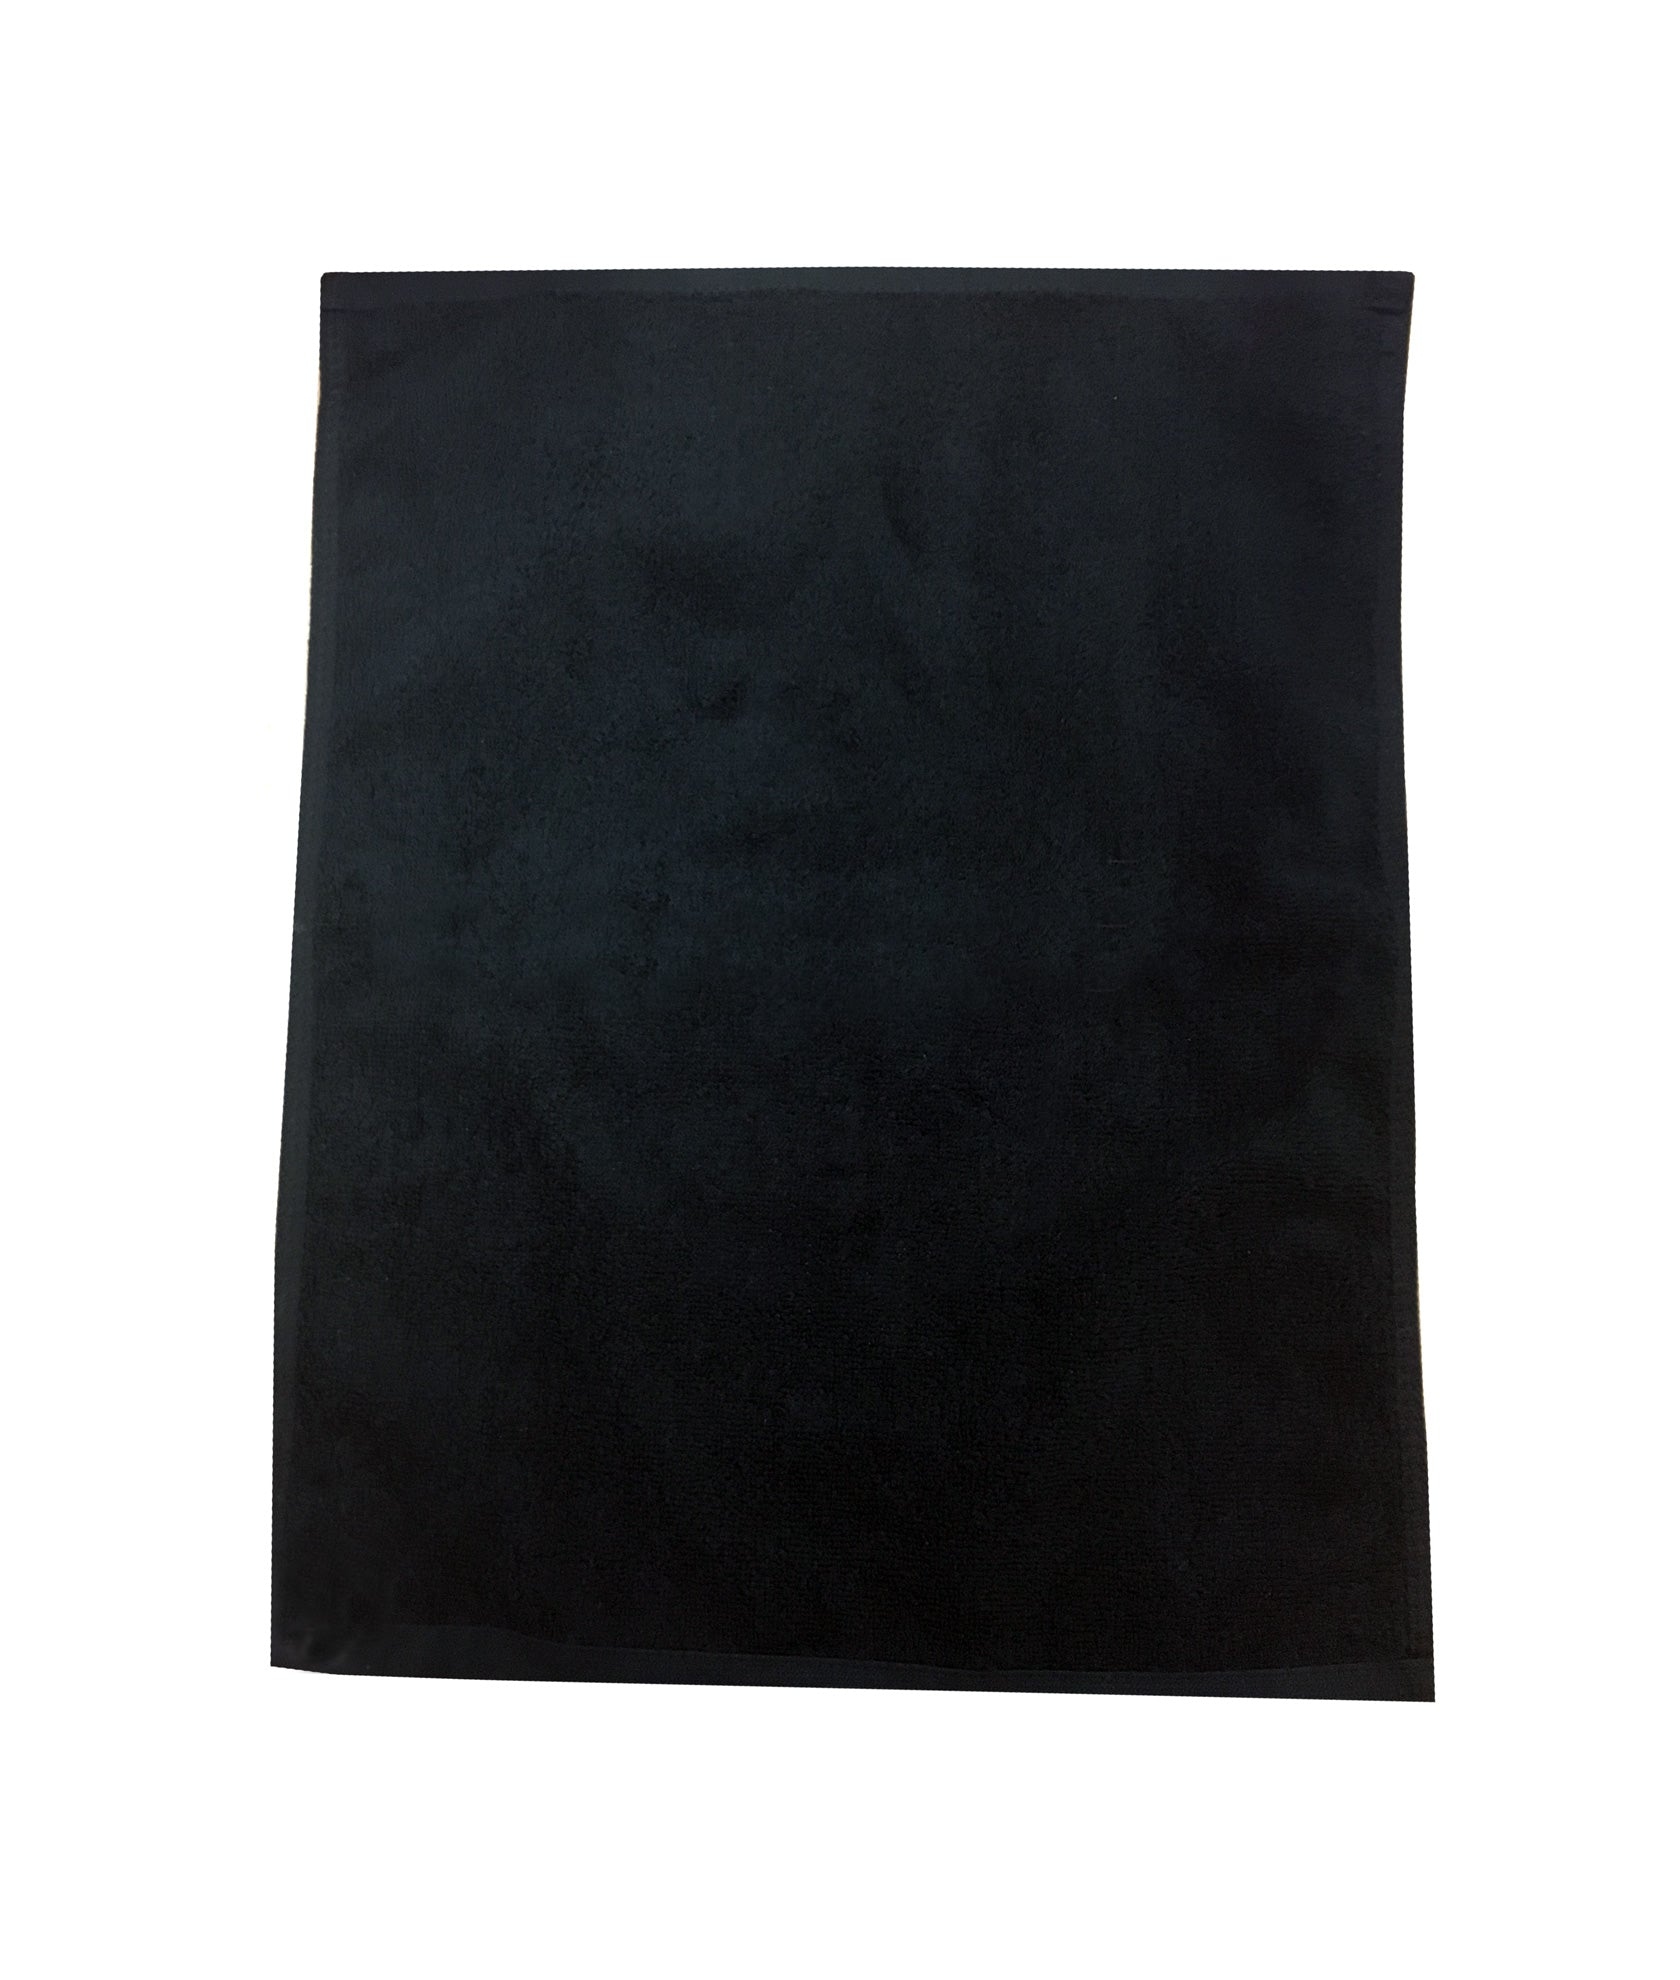 Shimuchan CULT Towel in Black${product_sku}